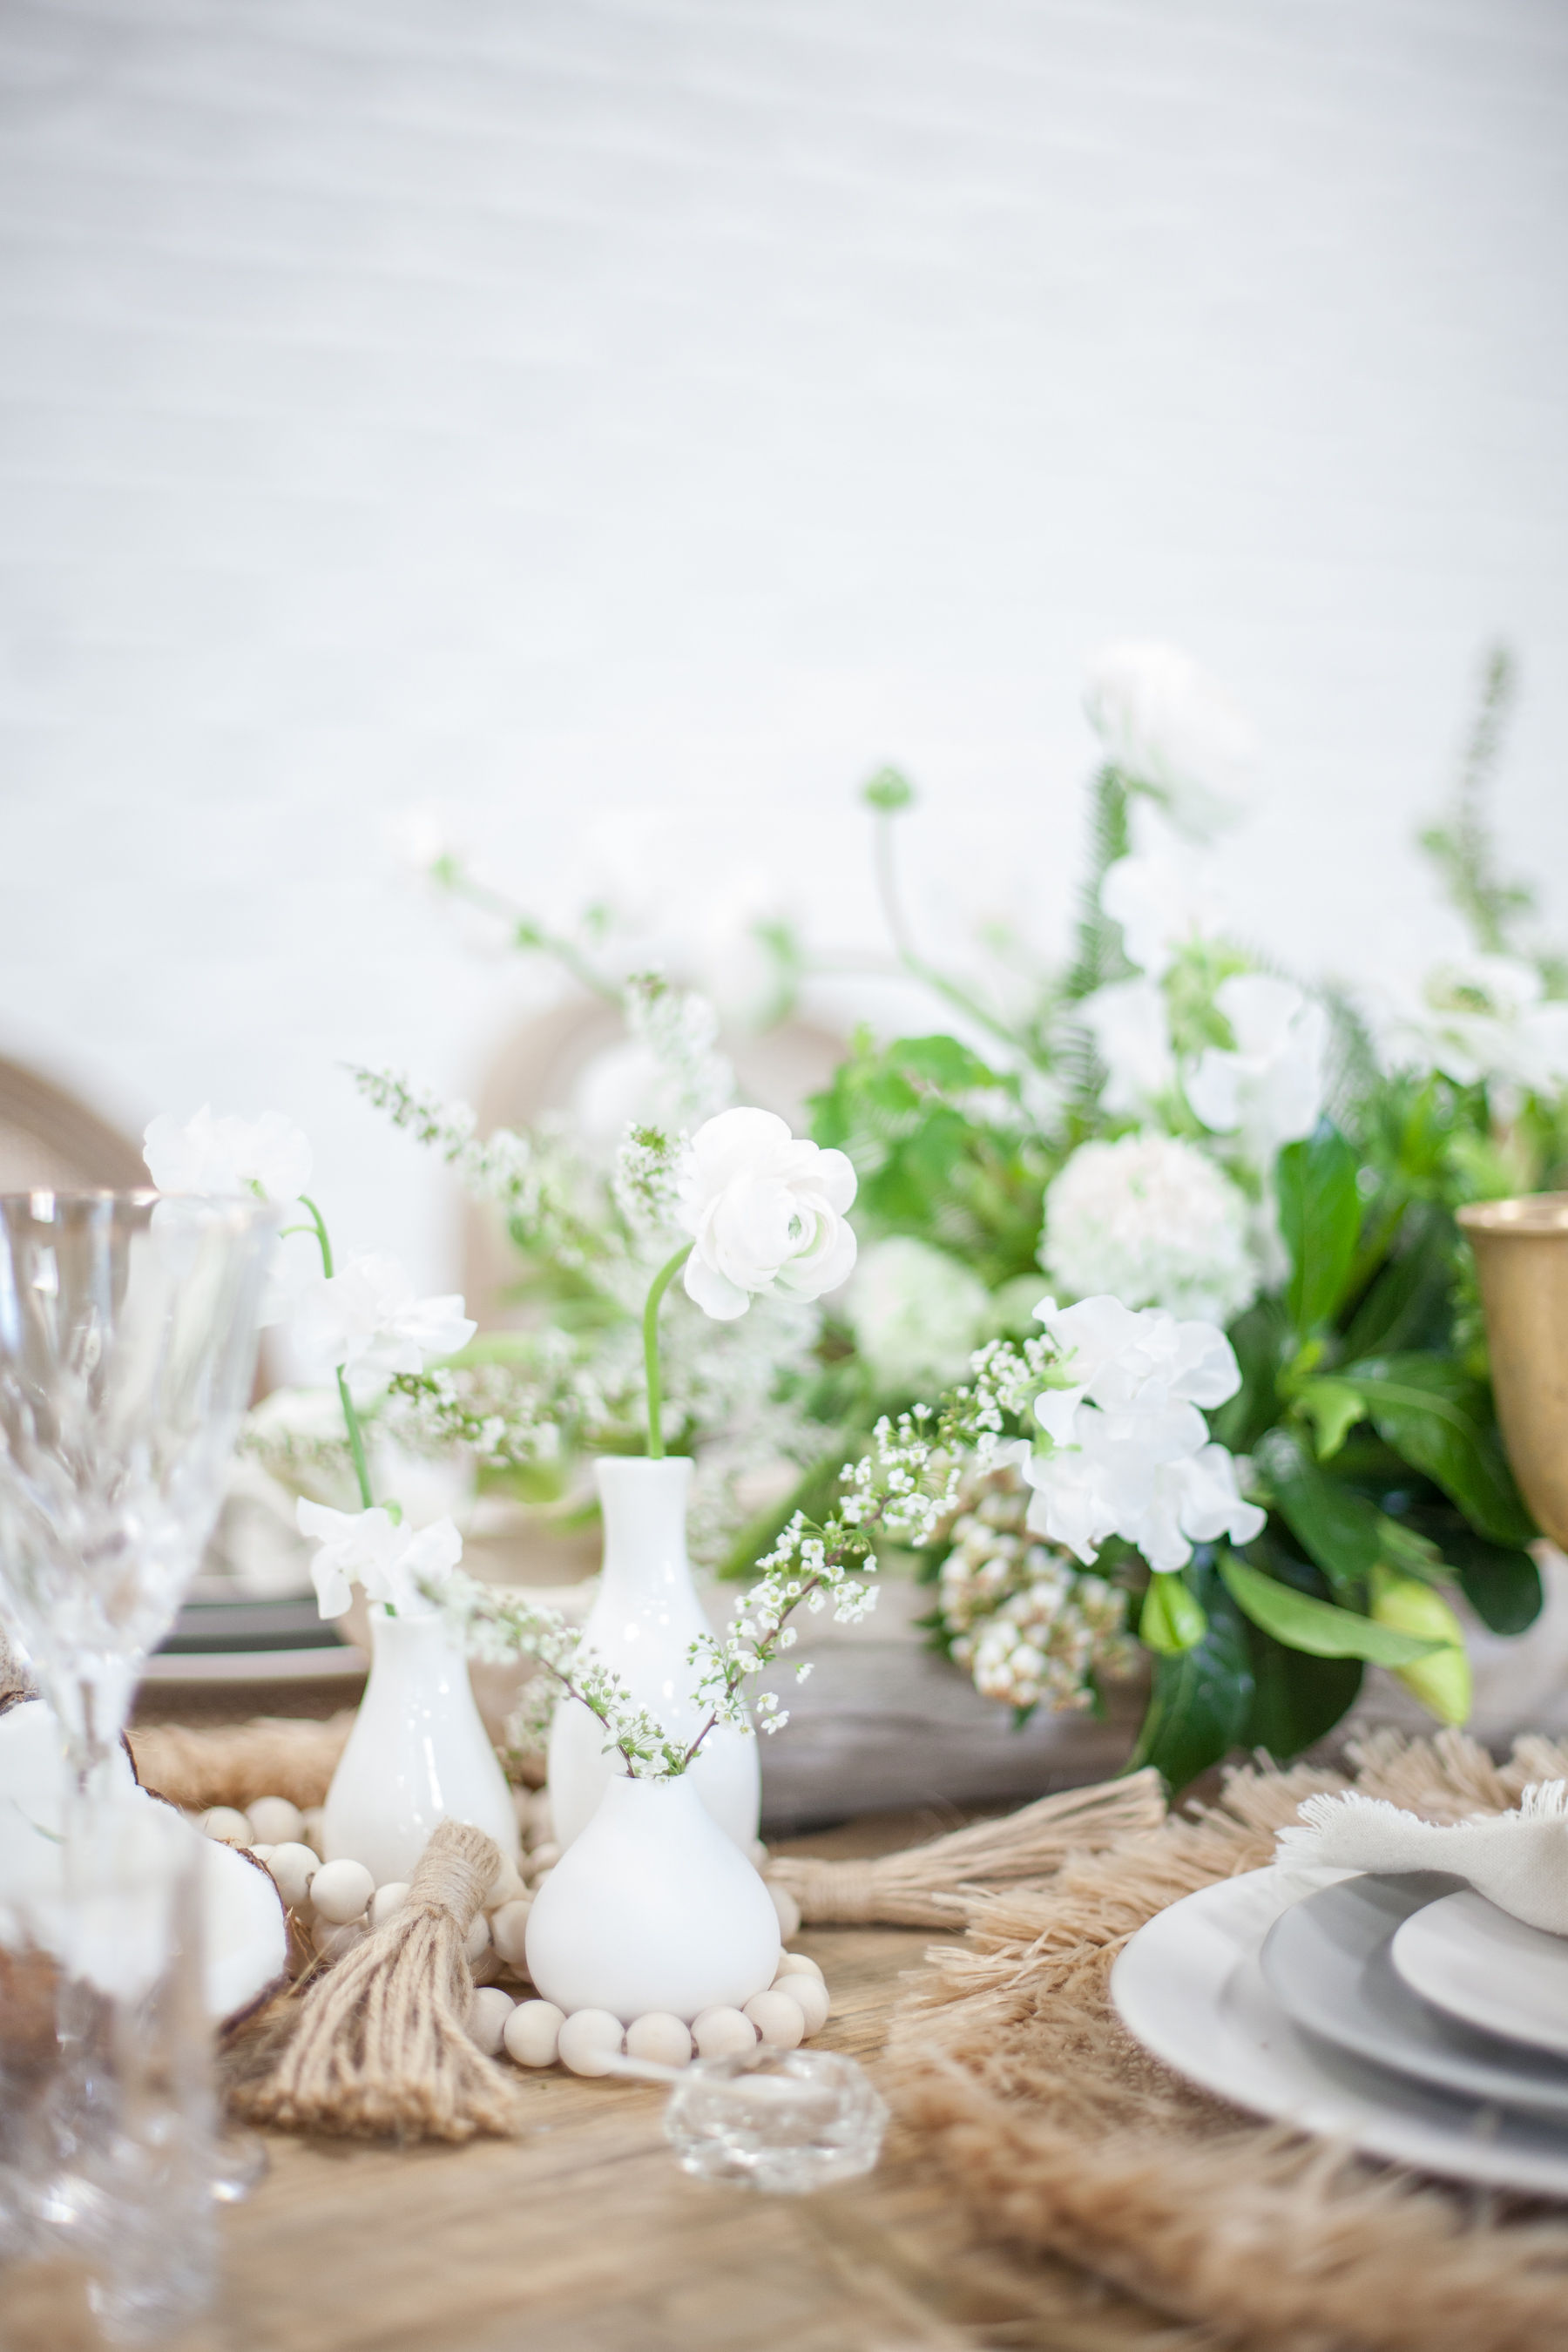 White bud vases with minimal white flowers.